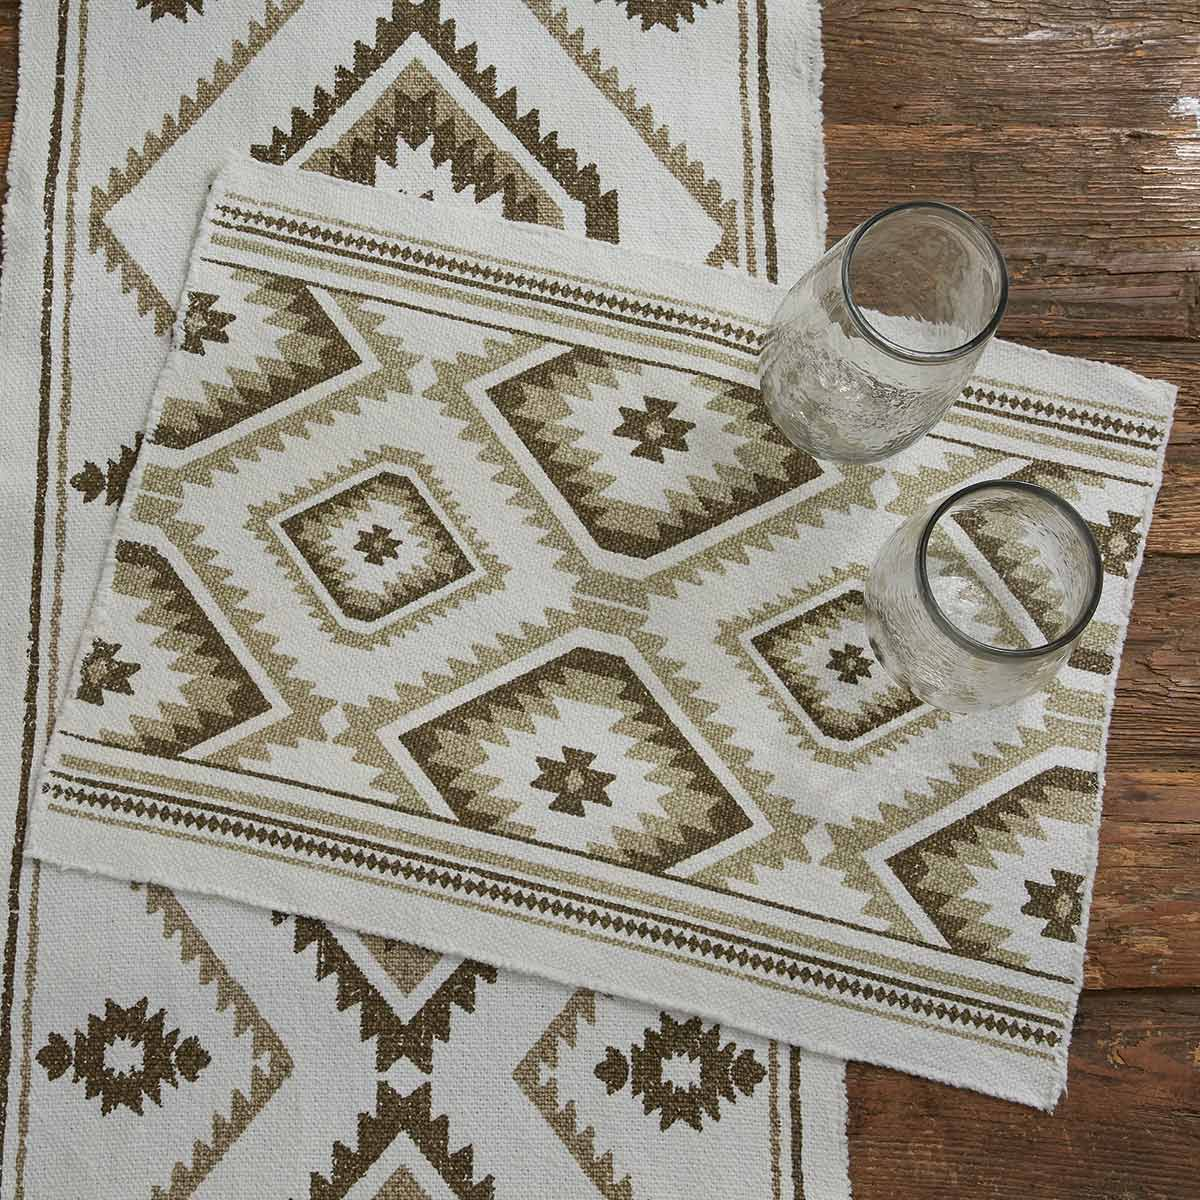 Las Cruces Placemats - Set of 4